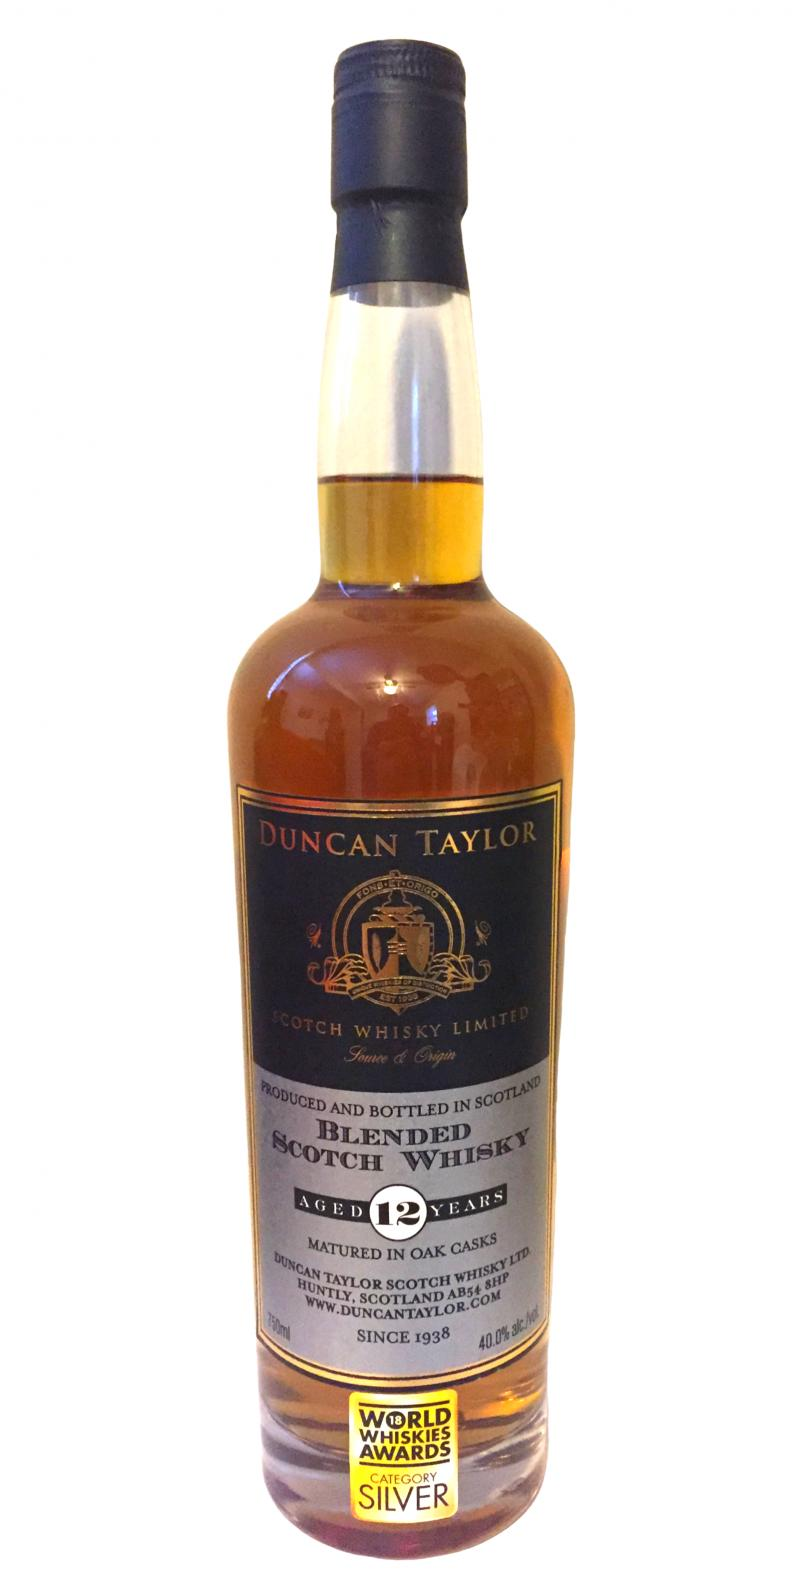 Blended Scotch Whisky 12-year-old DT